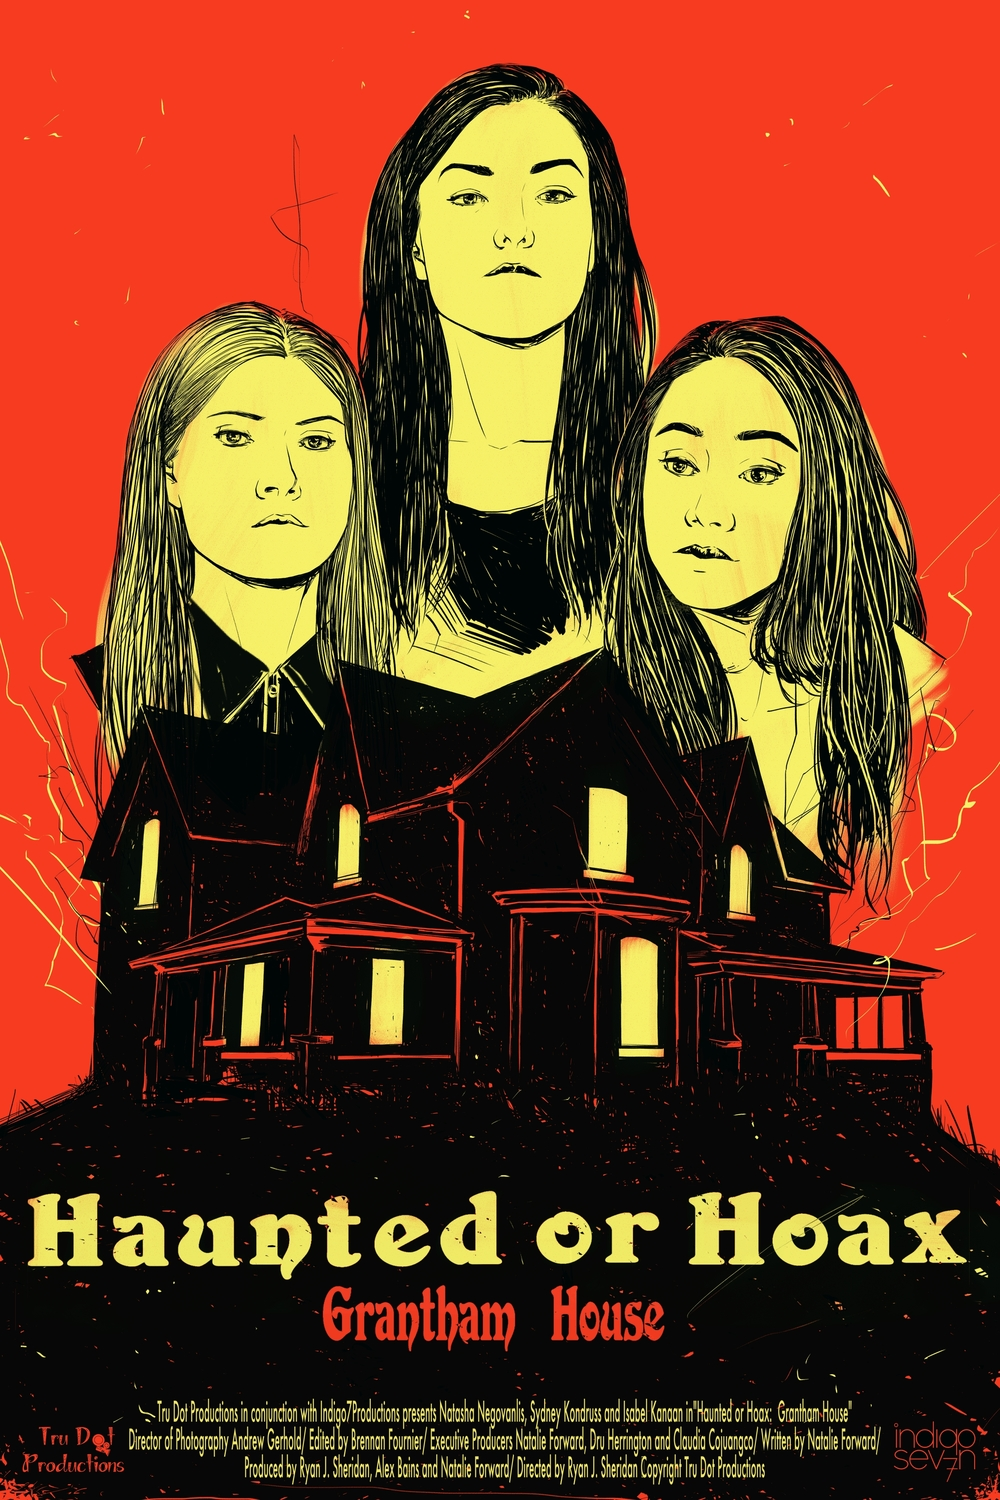 Poster Created for the 'Haunted or Hoax' Webseries, for Tru Dot Productions in conjunction with Indigo 7 Productions.